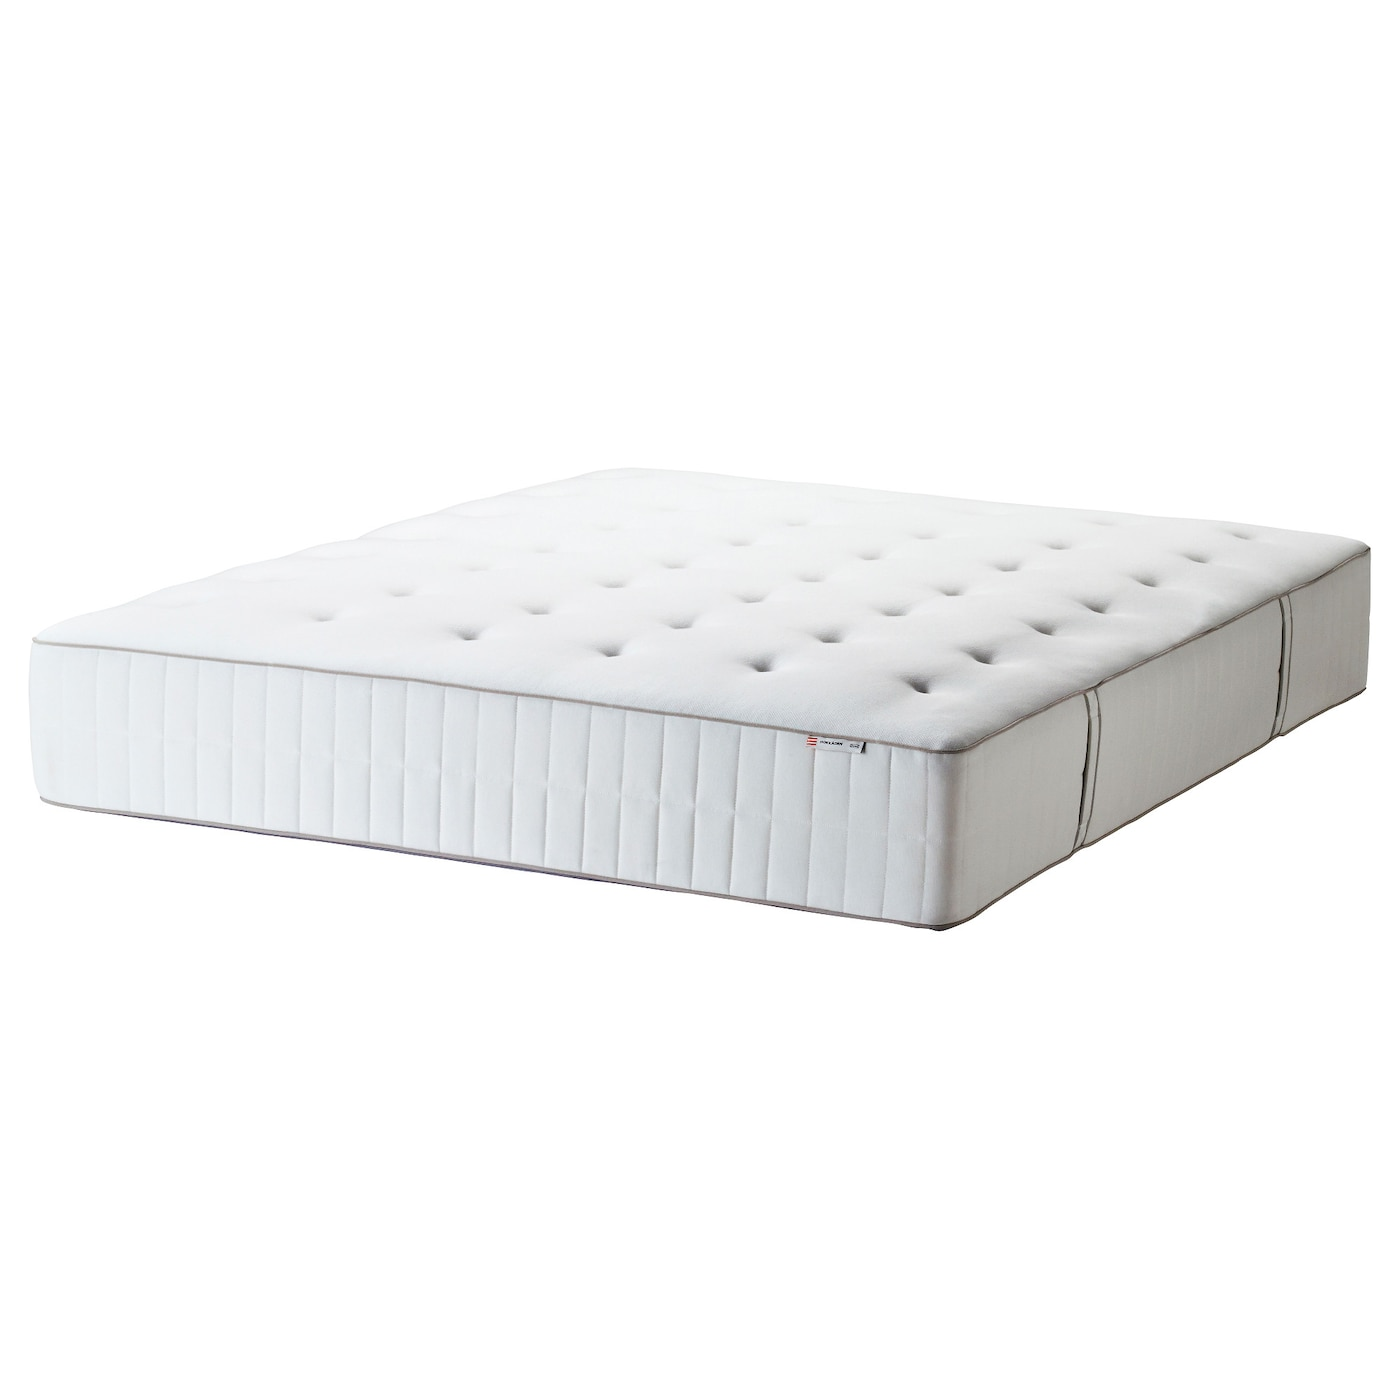 hokk sen matelas ressorts ensach s ferme blanc 160x200 cm ikea. Black Bedroom Furniture Sets. Home Design Ideas